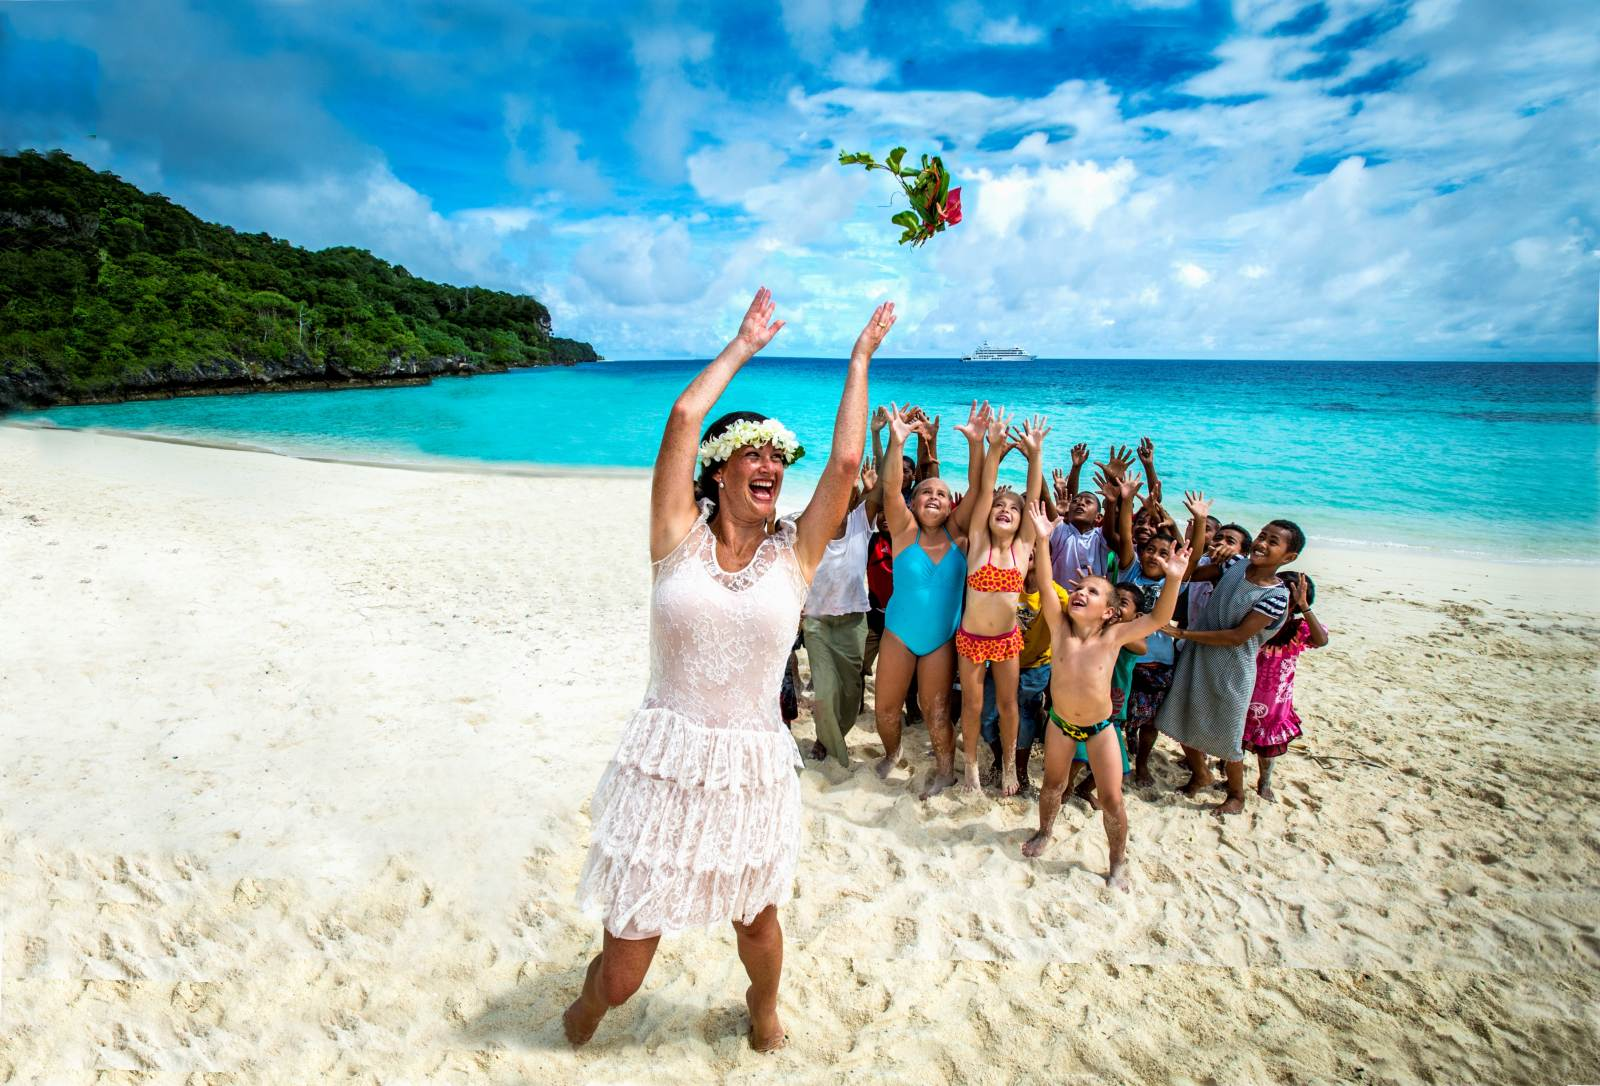 10 Things You Need to Know About Having a Fiji Wedding